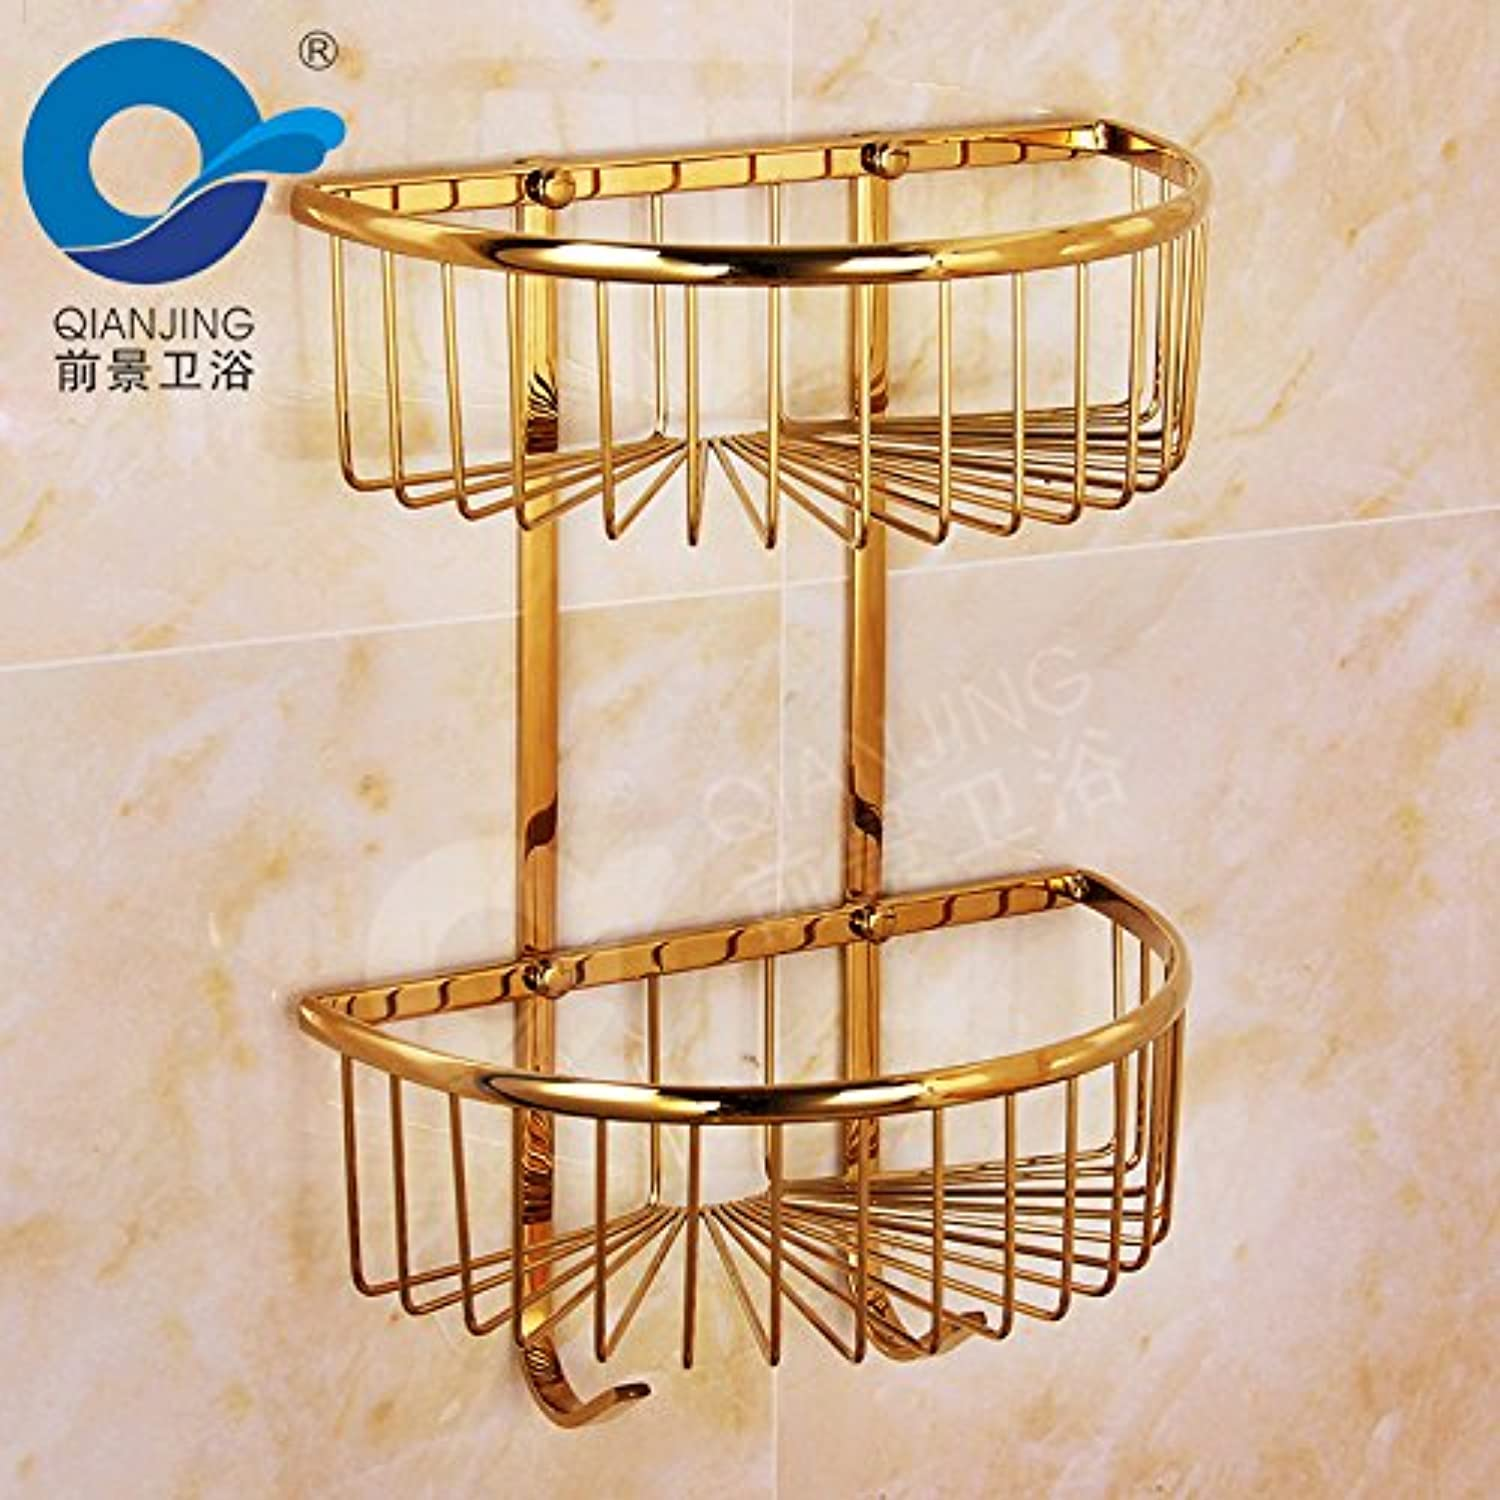 Stainless steel shelf bathroom double triangle racks kitchen and bathroom shelves 275375160mm